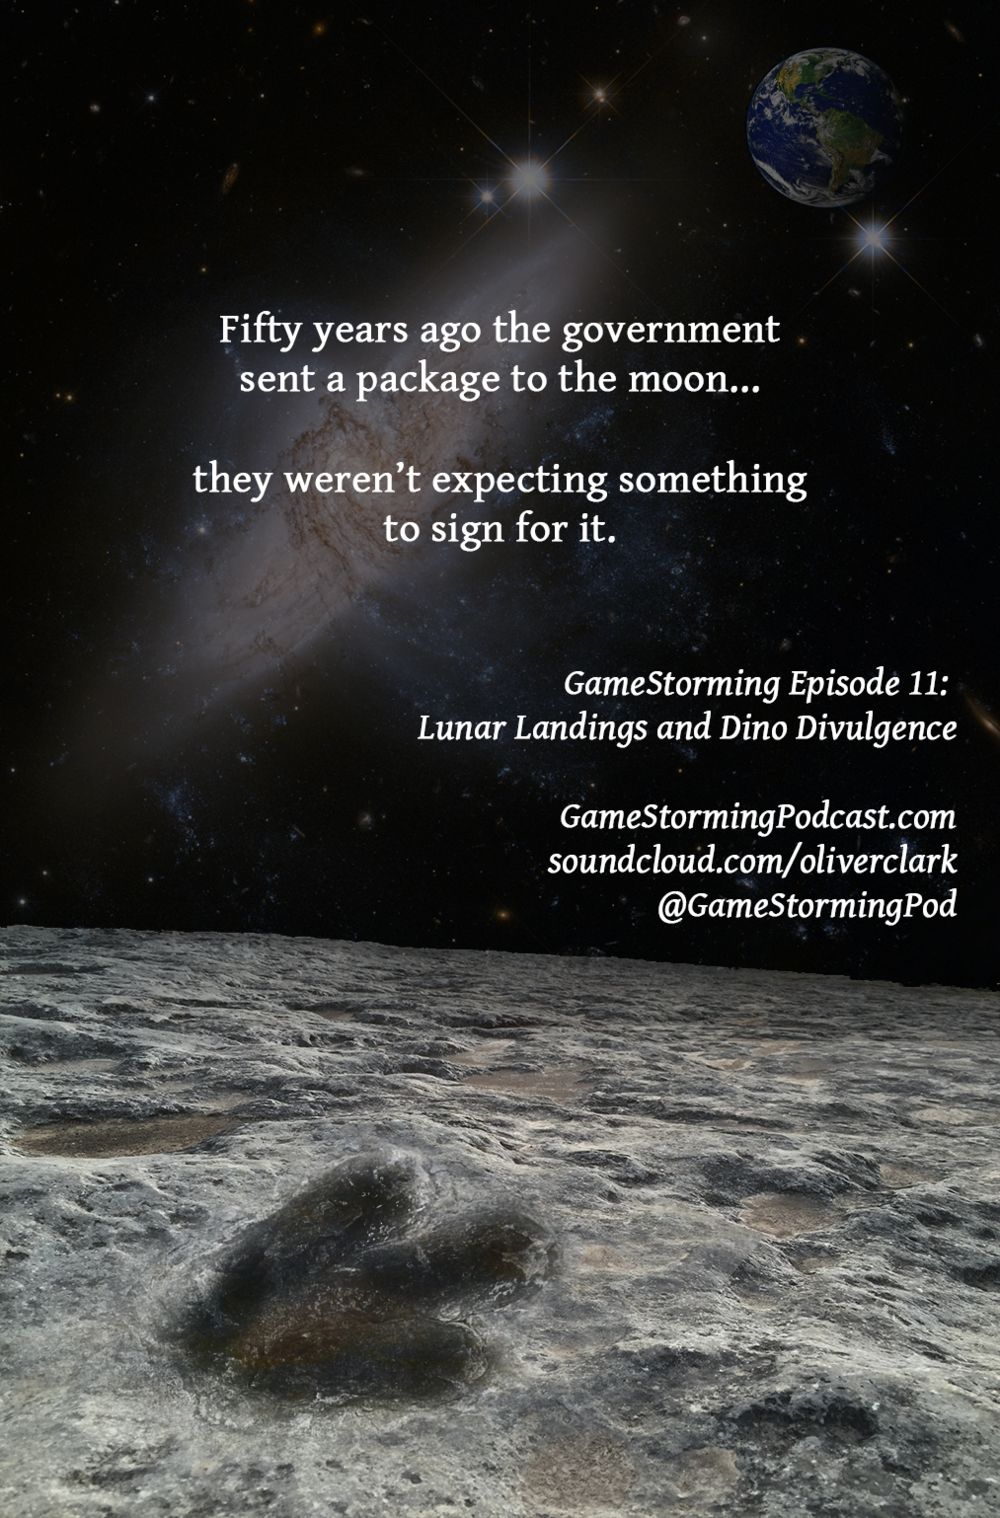 GameStorming Podcast Episode 11 Lunar Landings and Dino Divulgence Movie Poster